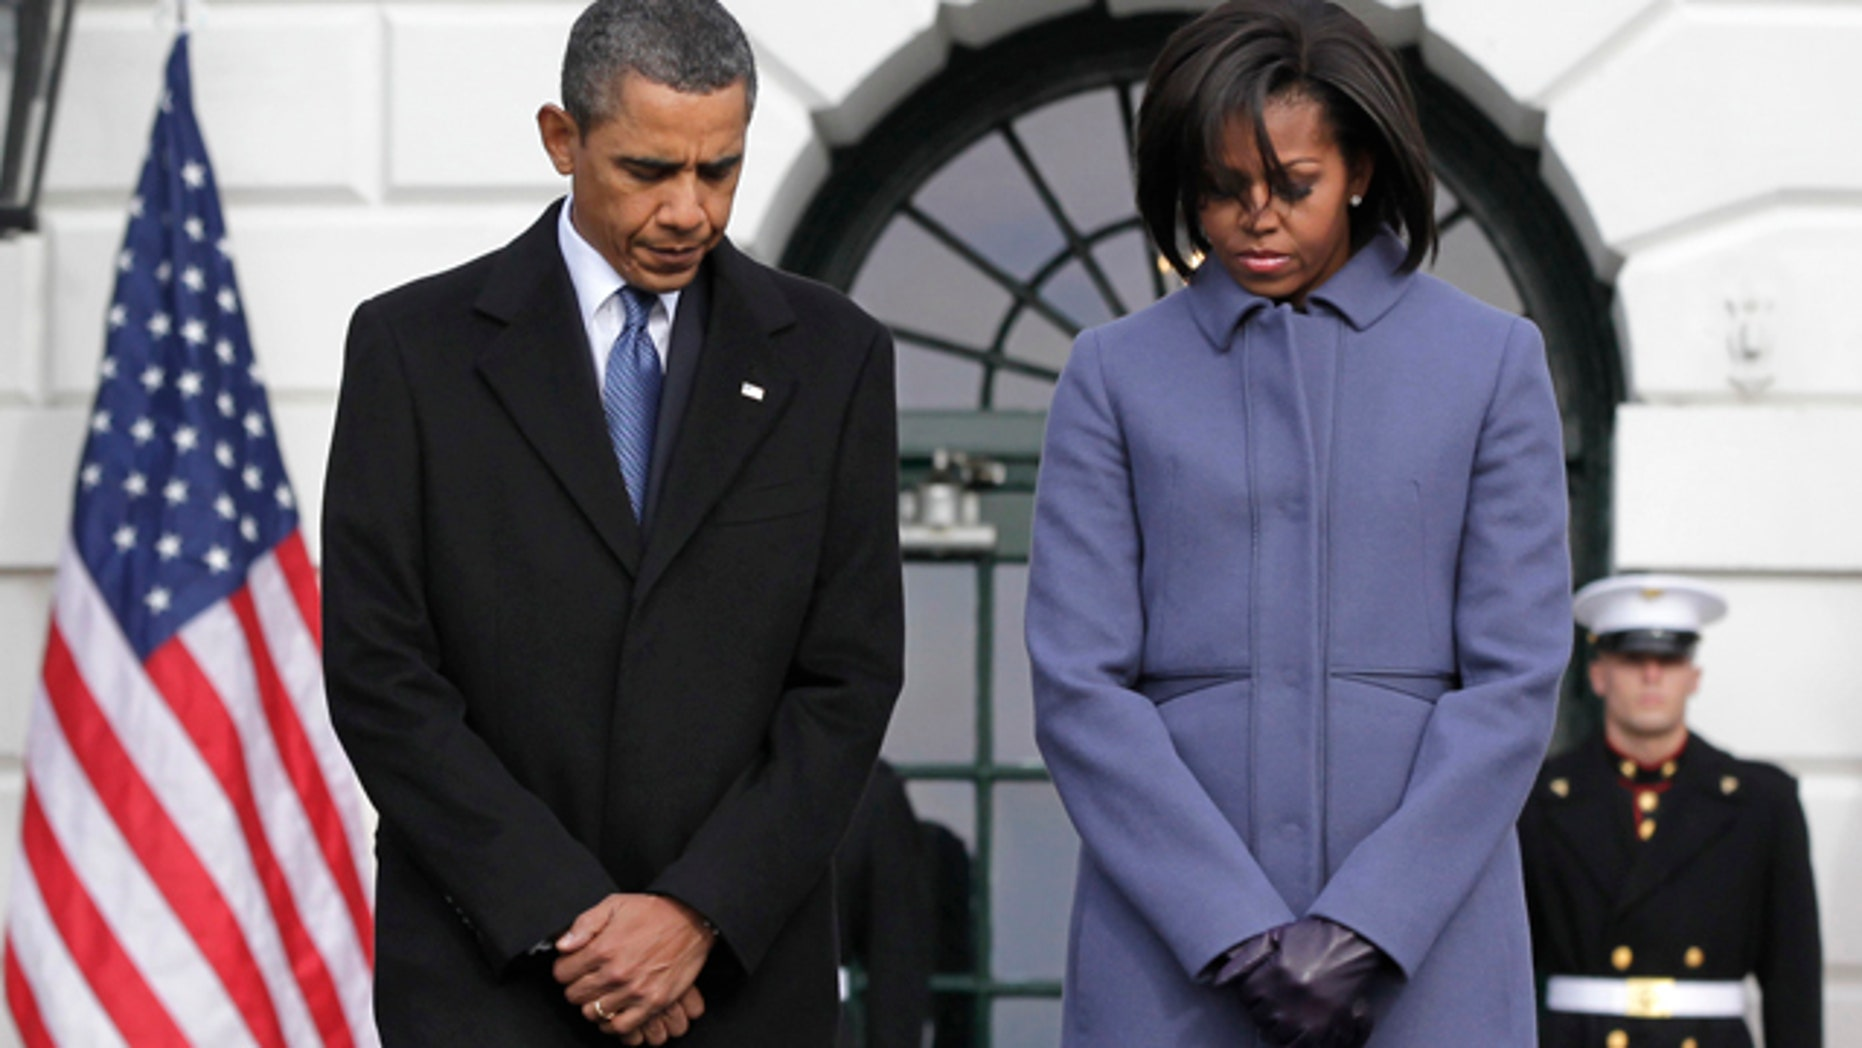 Monday: President Obama and first lady Michelle Obama are joined by government employees on the South Lawn of the White House in Washington, to observe a moment of silence for Rep. Gabrielle Giffords, D-Ariz., and the other victims of an assassination attempt against her. The shooting at a town hall-style event outside a supermarket in Tucson, Ariz., Saturday left six dead, including a federal judge, and critically wounded Rep. Gabrielle Giffords.